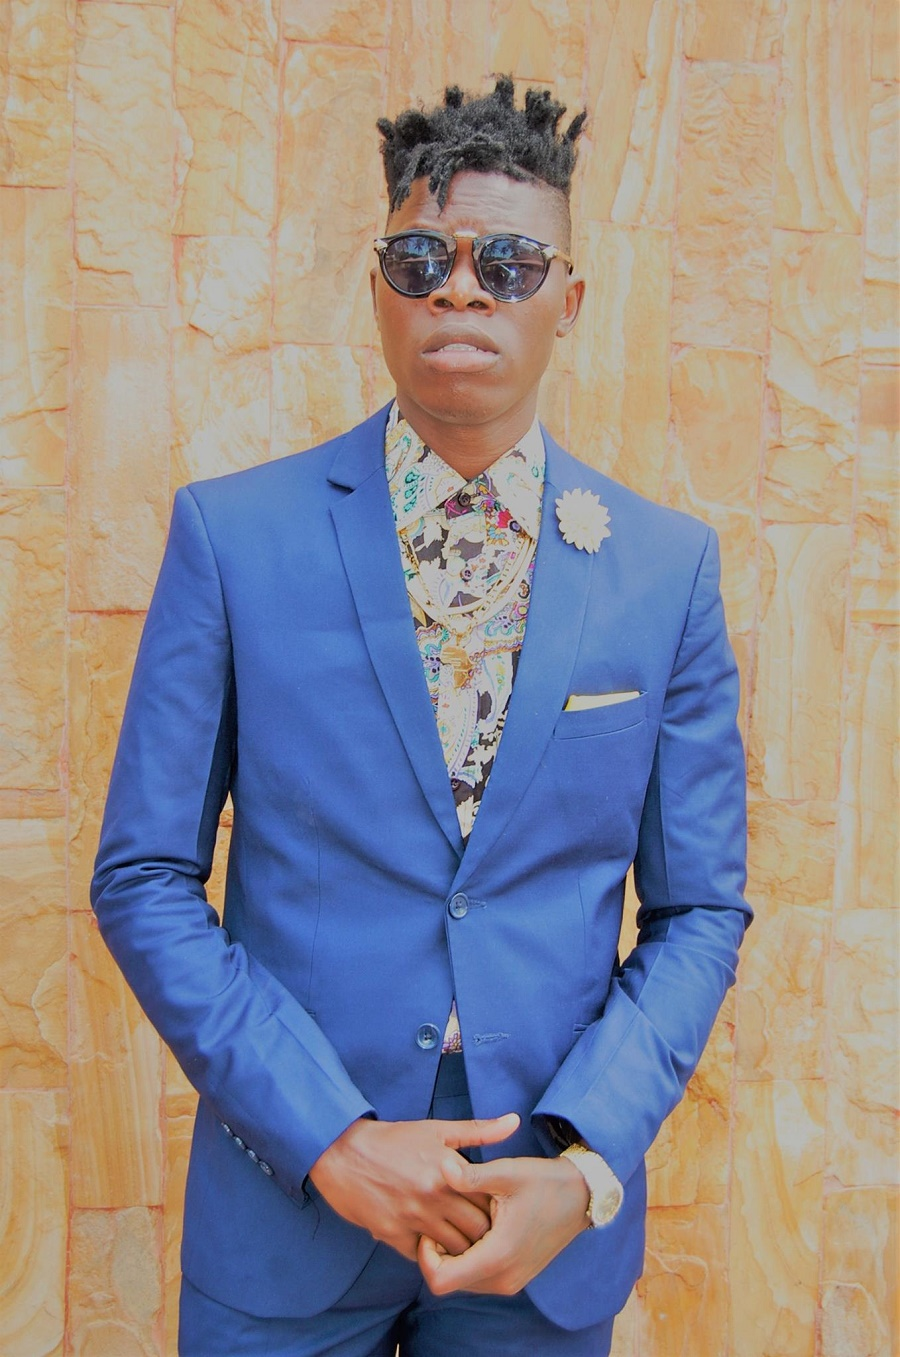 Vicmass LuoDollar is grateful to his fans for their love and support